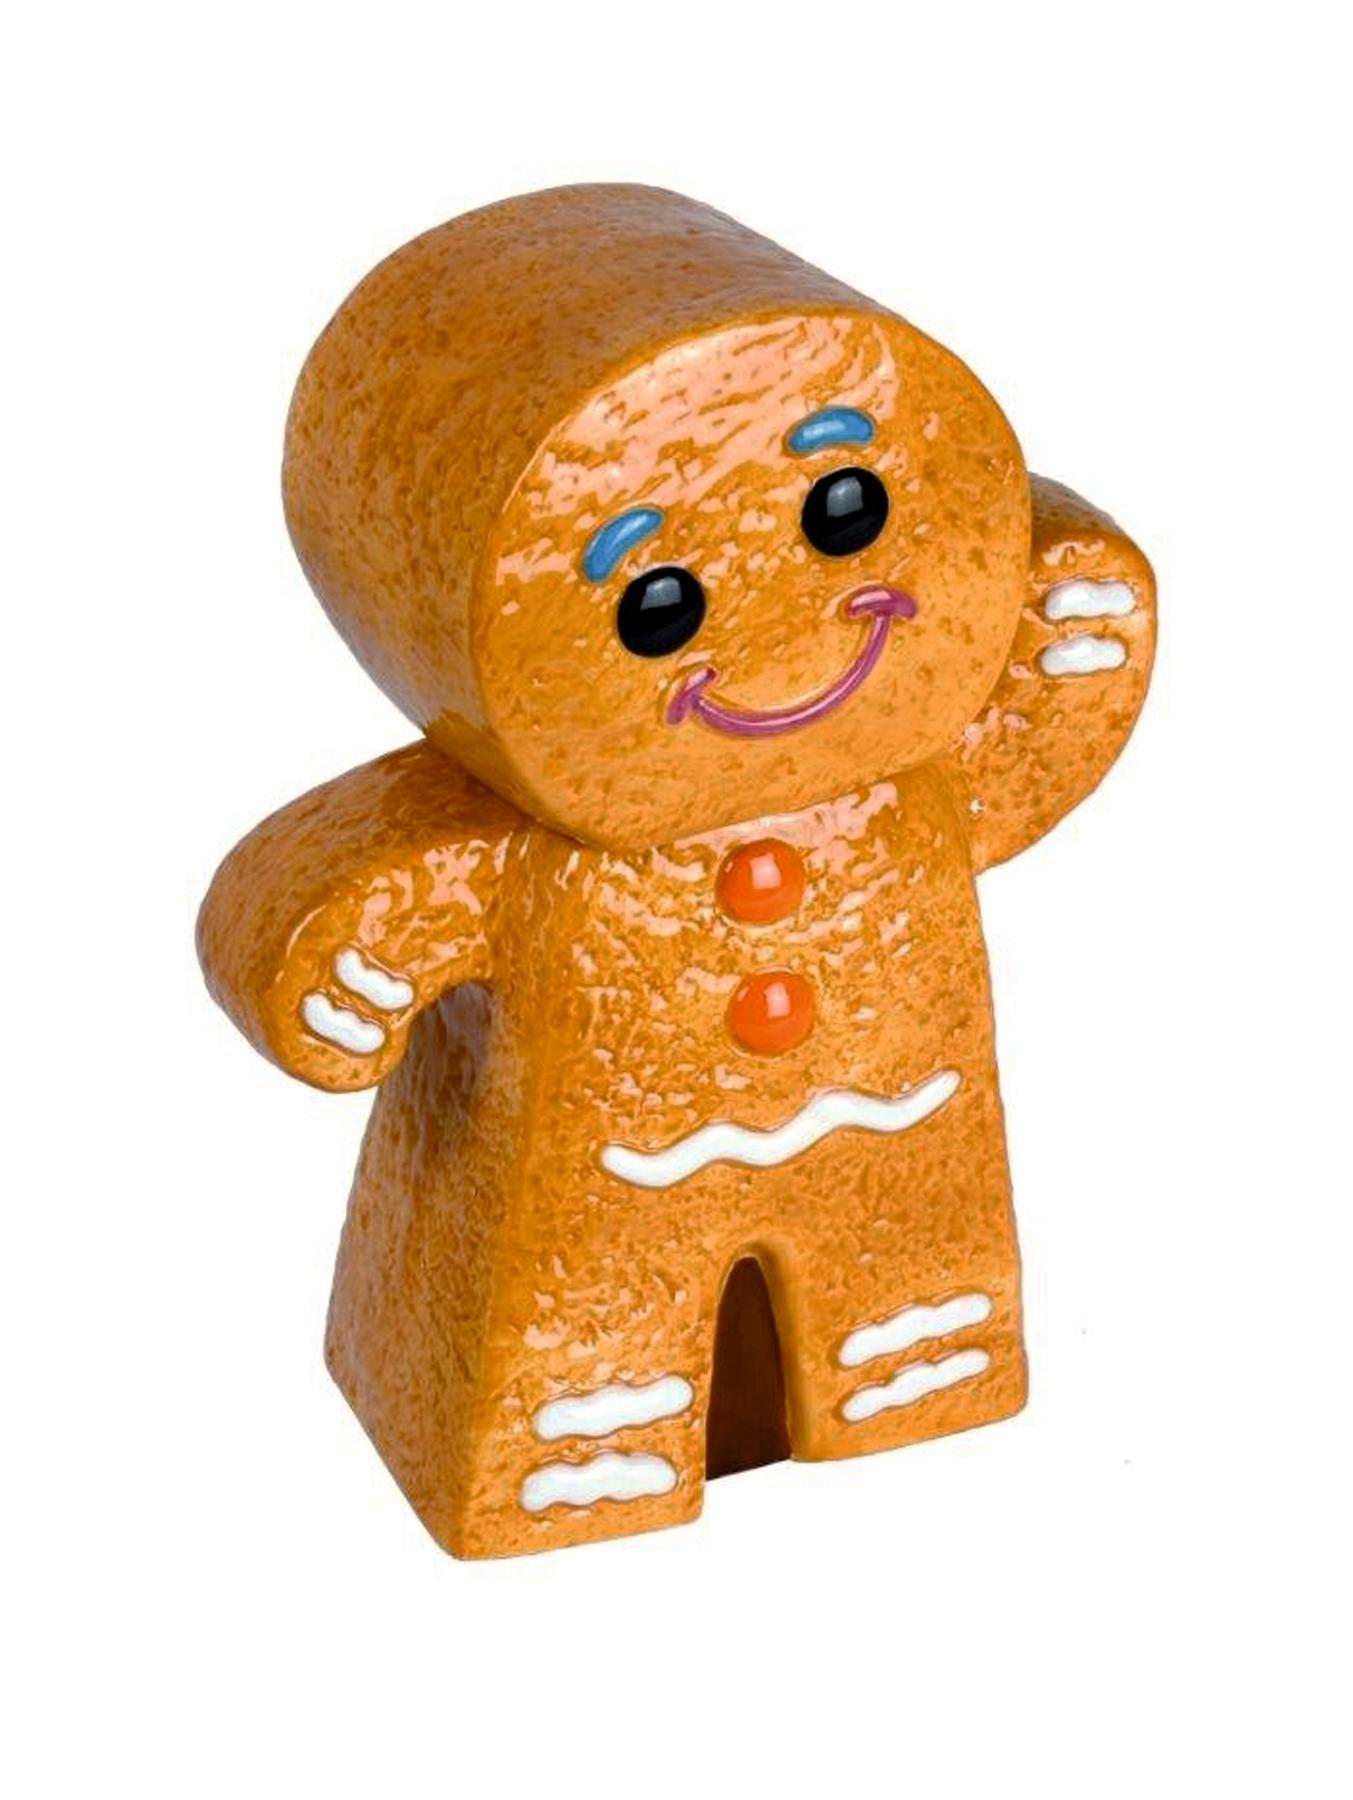 Gingerbread Man Cookie Jar and Biscuits